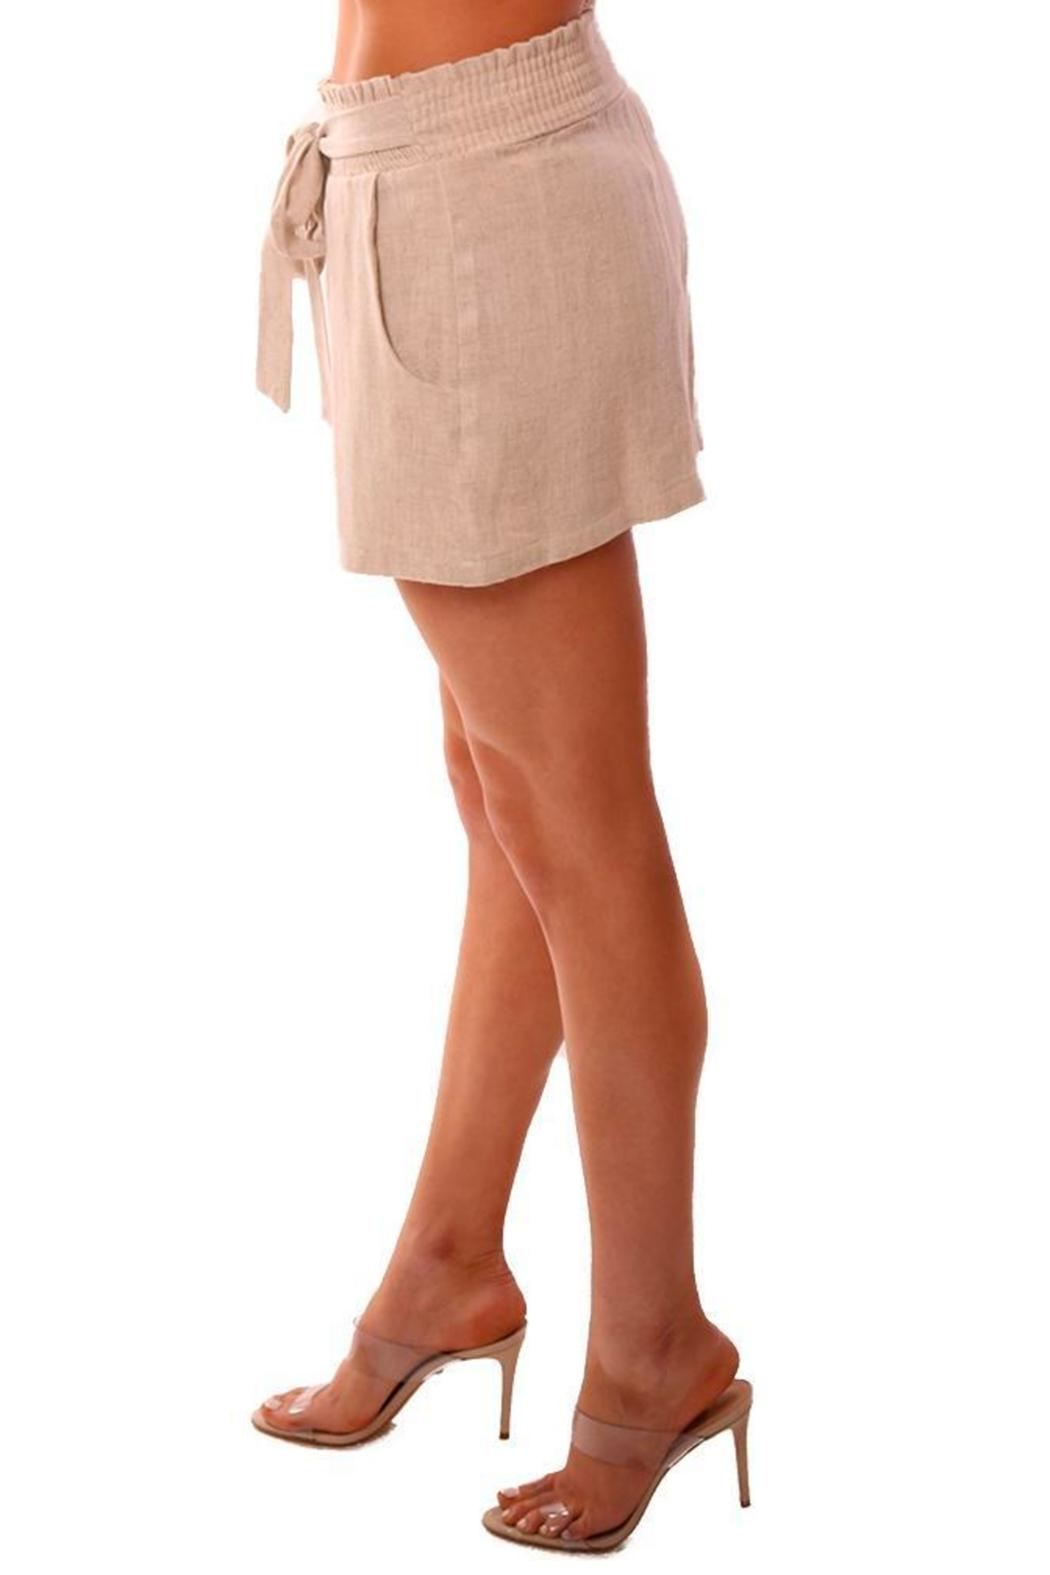 Veronica M Smocked Linen Shorts - Side Cropped Image